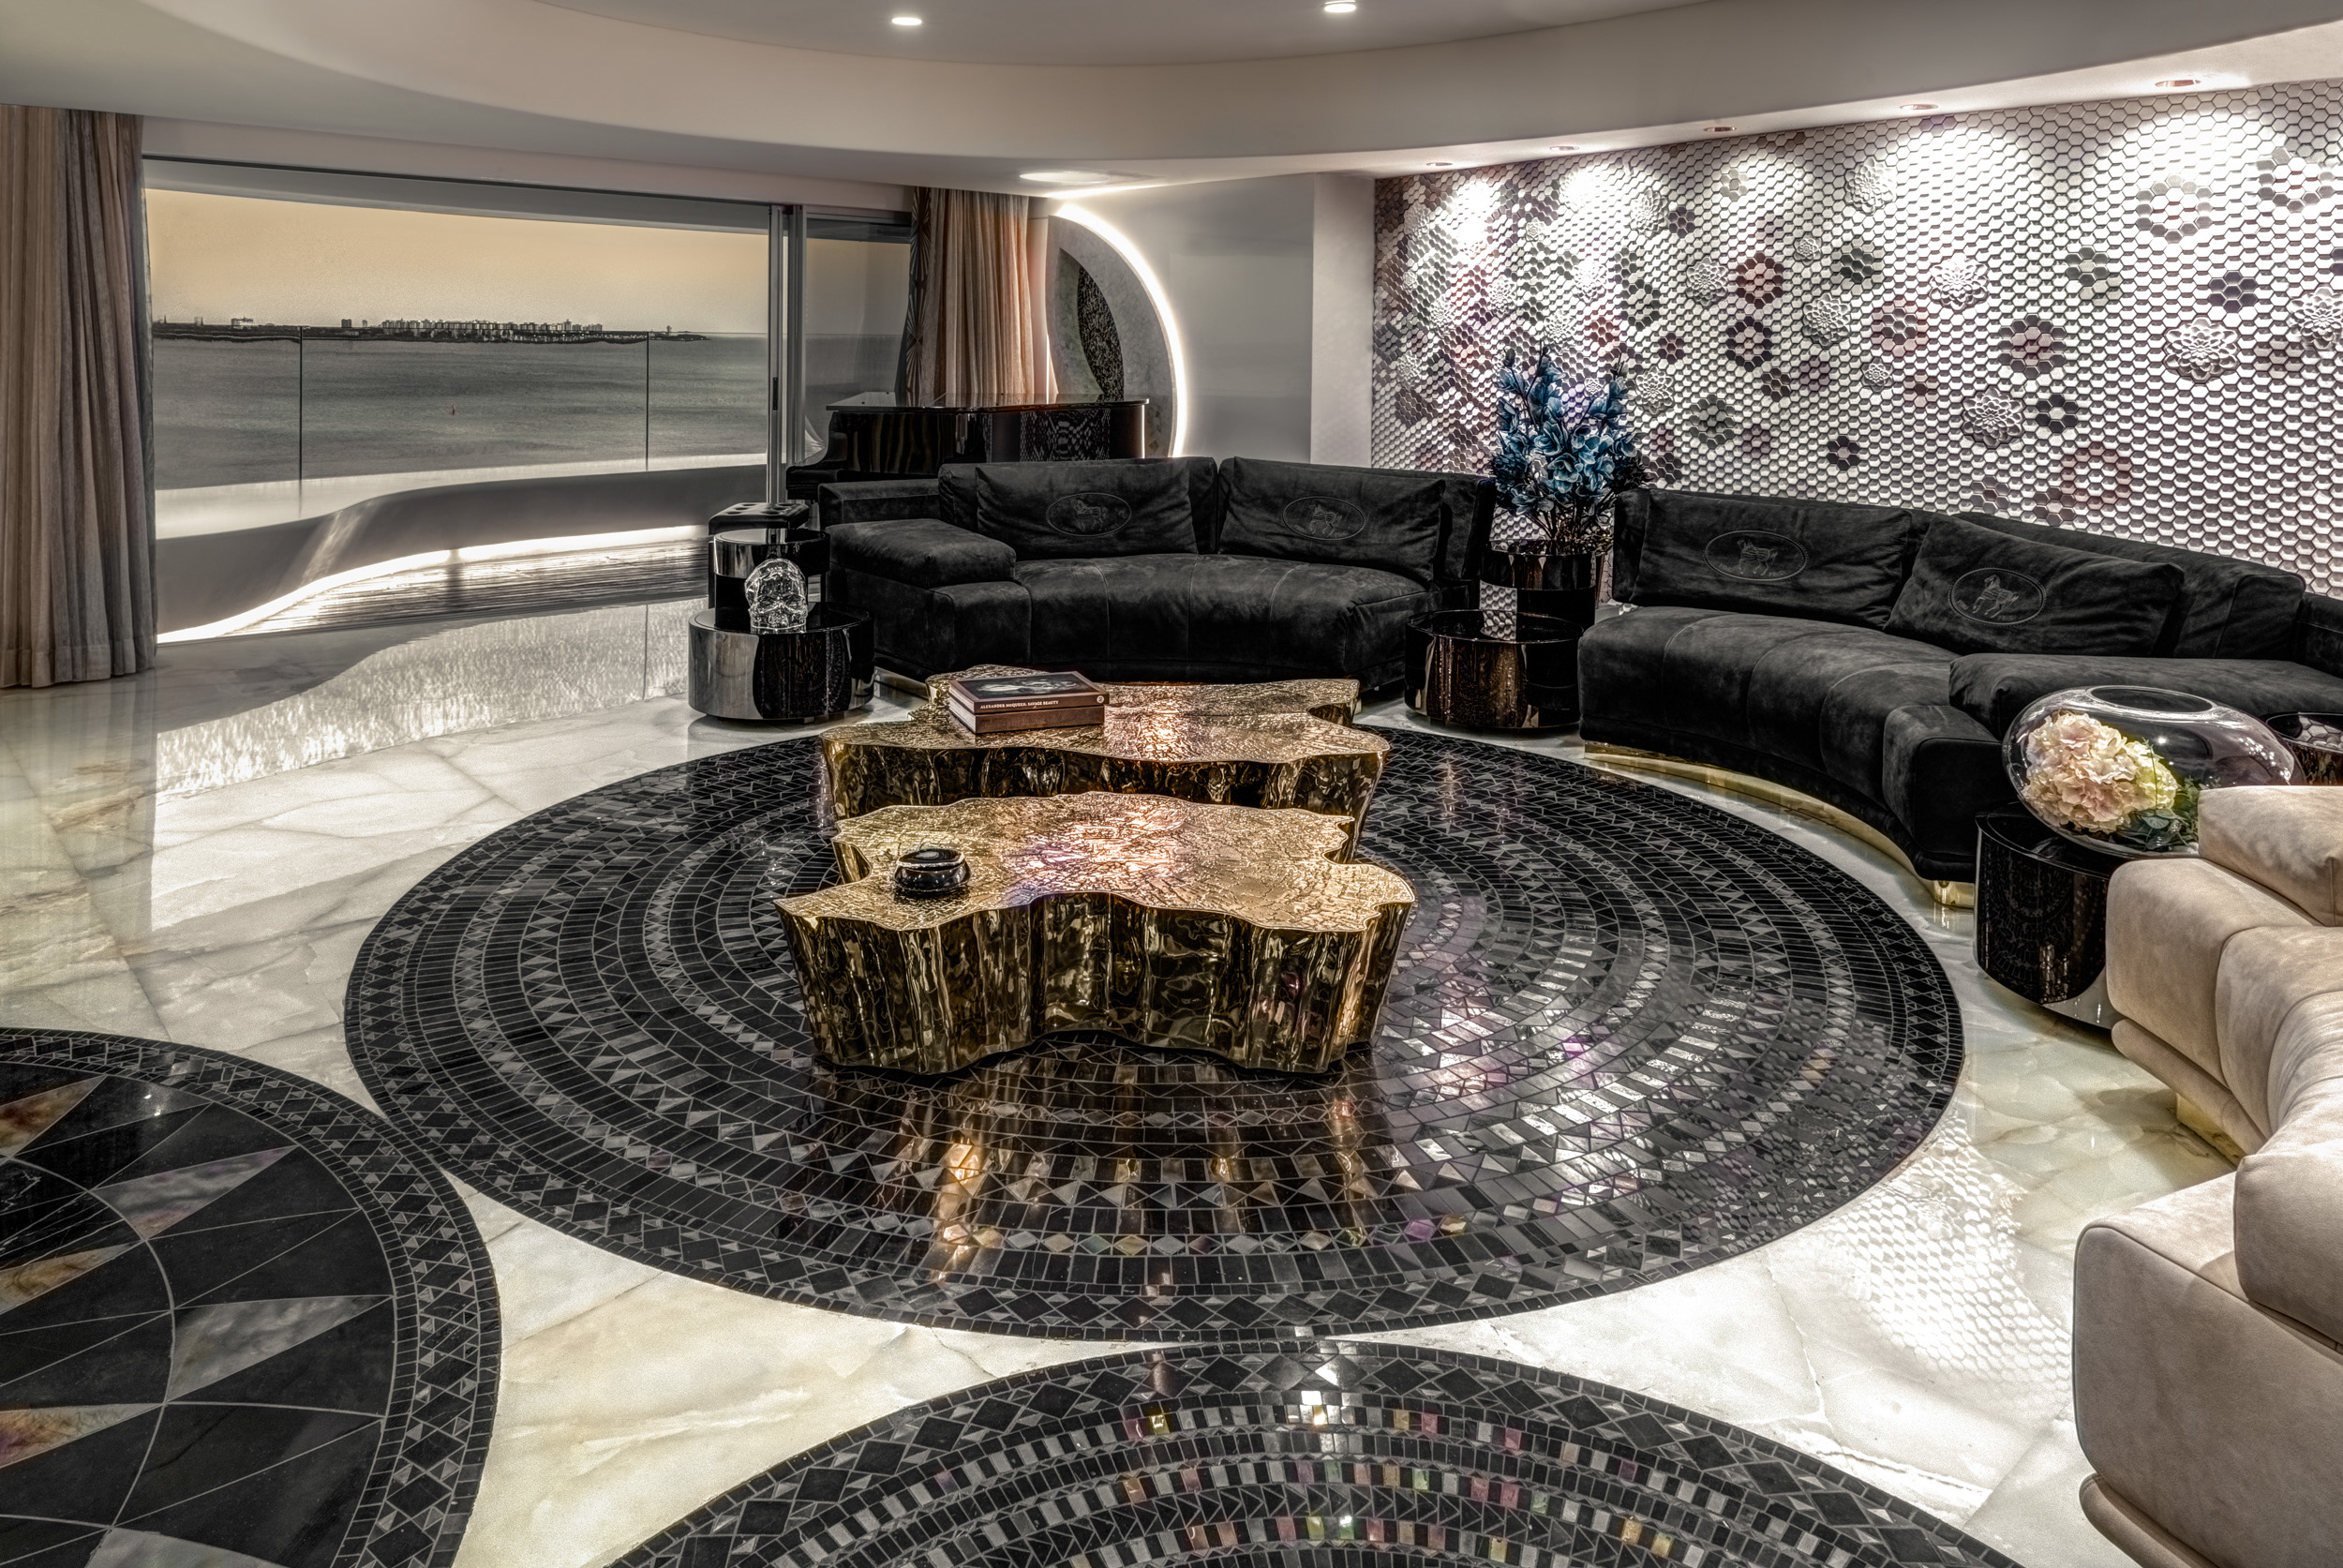 Luxurious Apartment; Luxury; Apartment; Project; Freestanding; Elegant; Luxury; Maison Valentina; Three Hole Mixer Tap; interior design; extraordinary; eclectic luxurious apartment The Ever-Lasting Luxurious Apartment by ZZ Architects sala